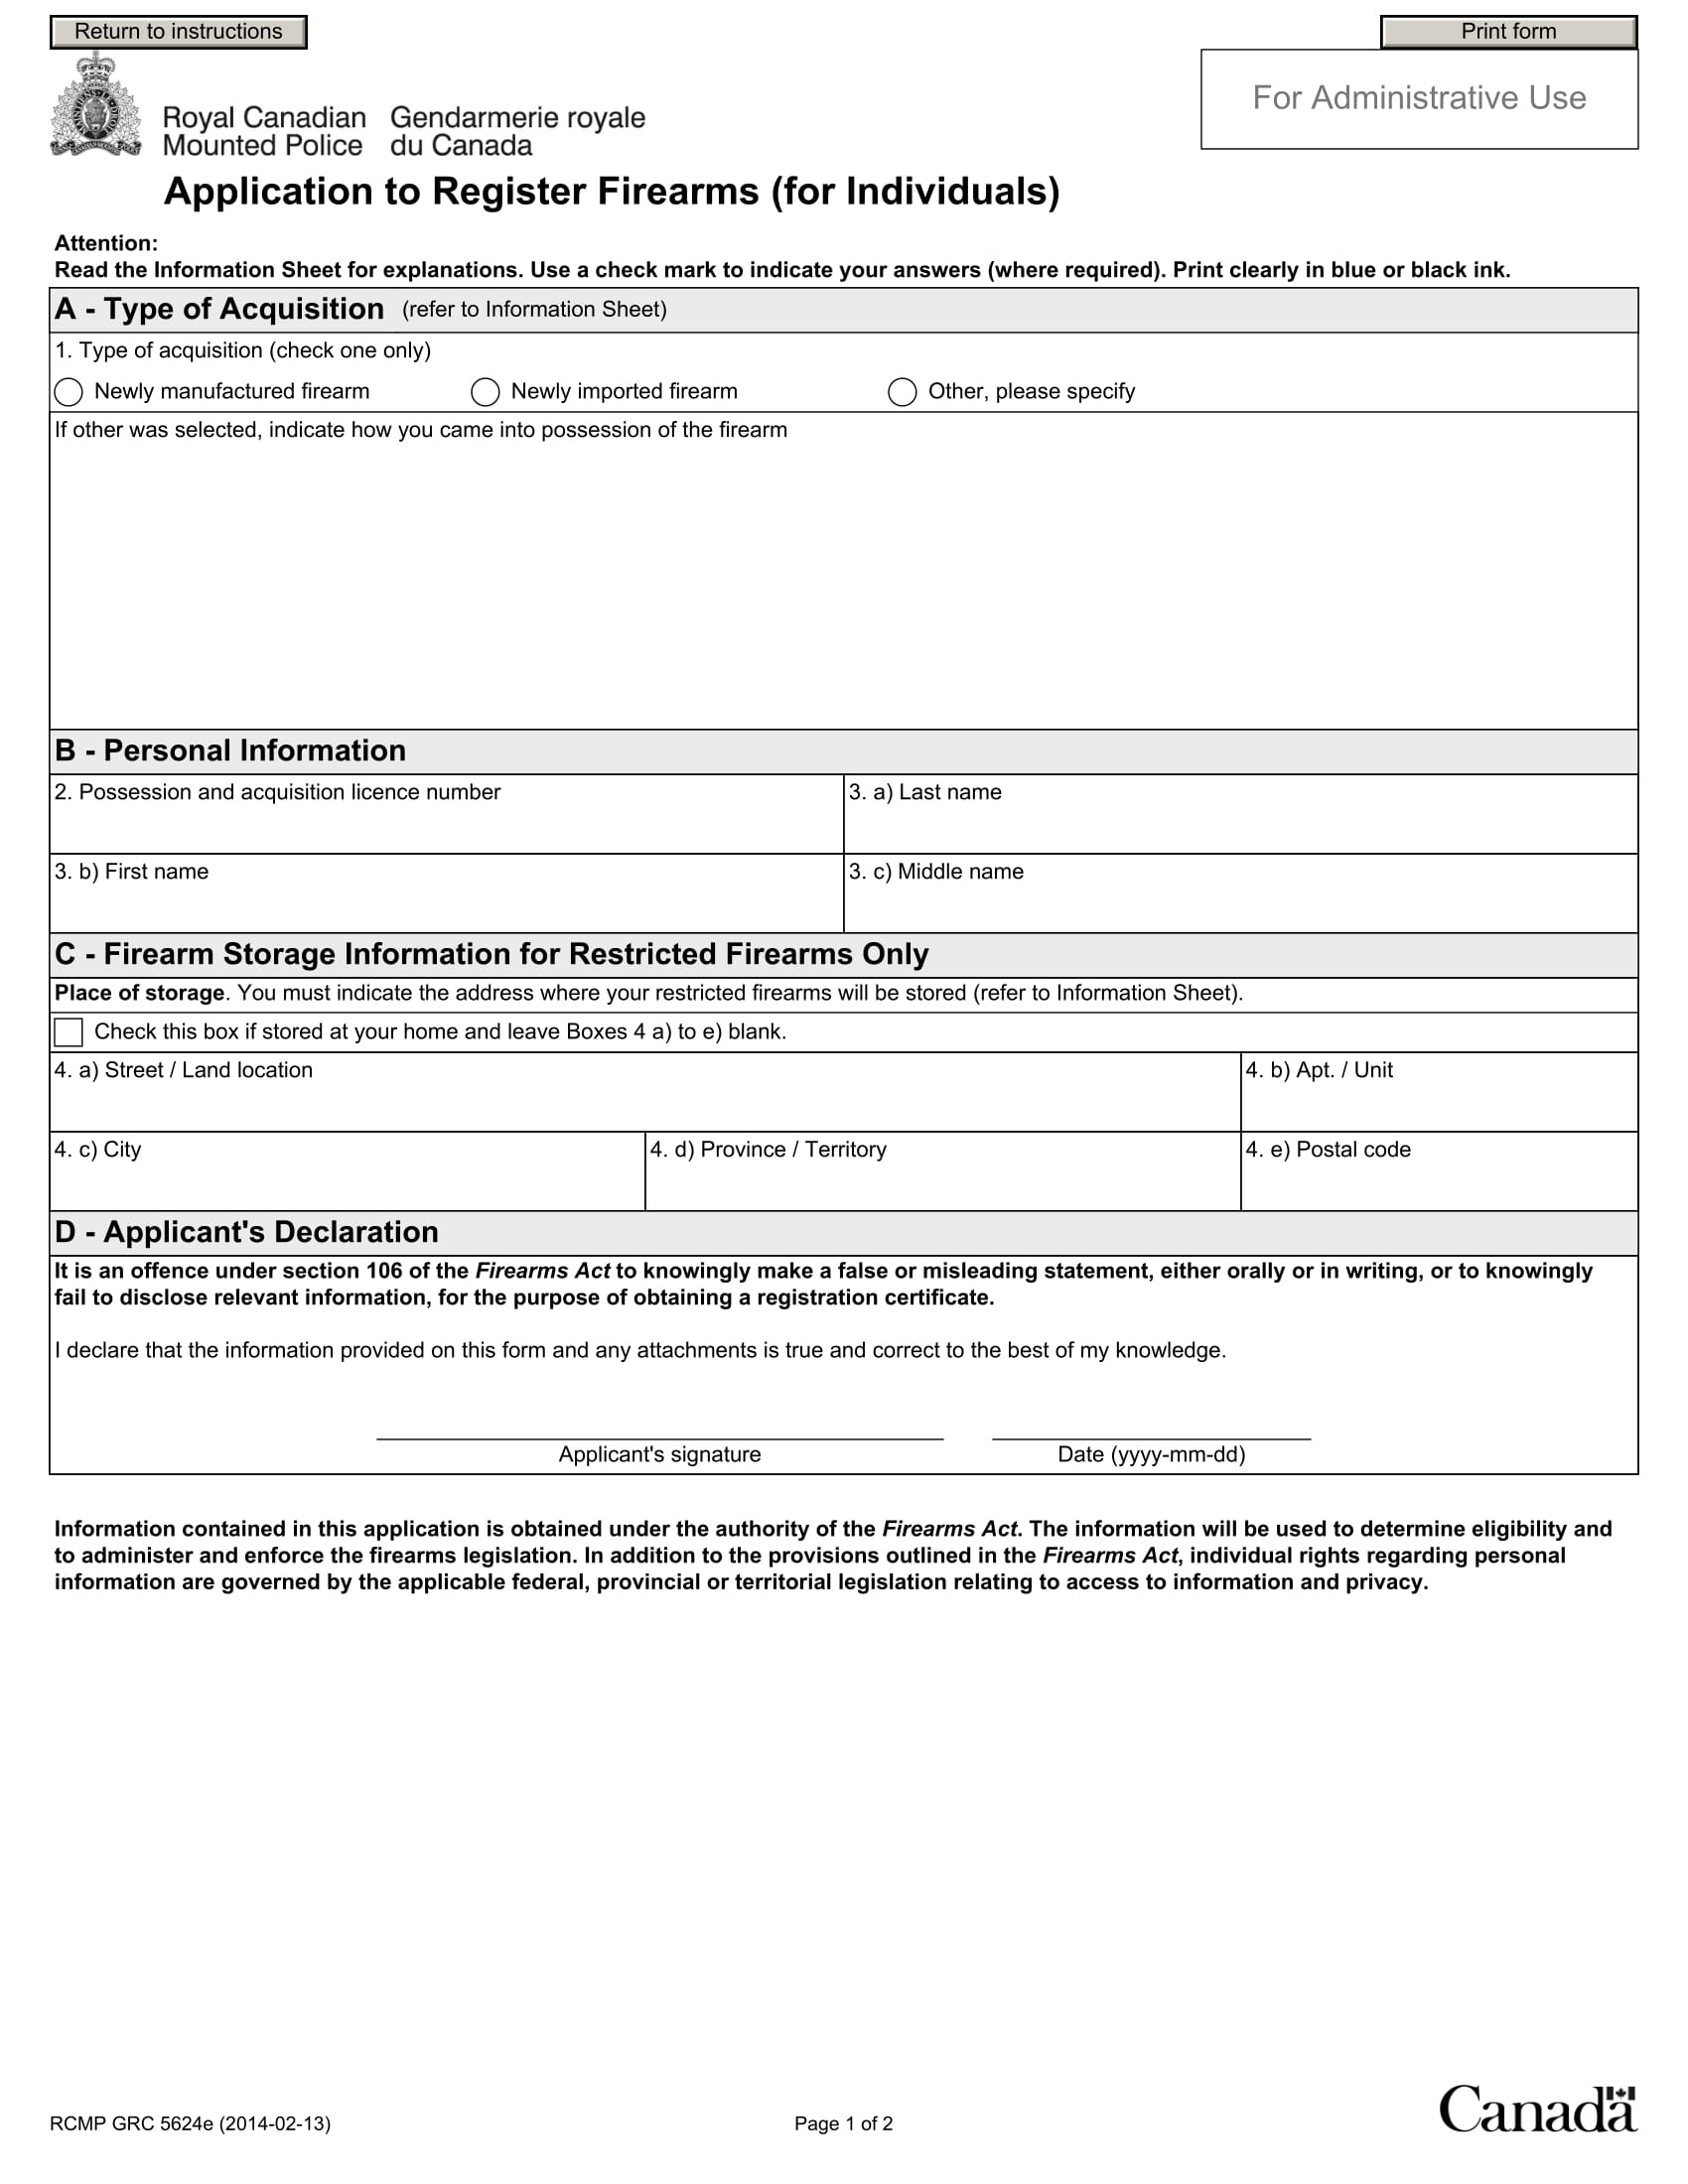 application to register firearms